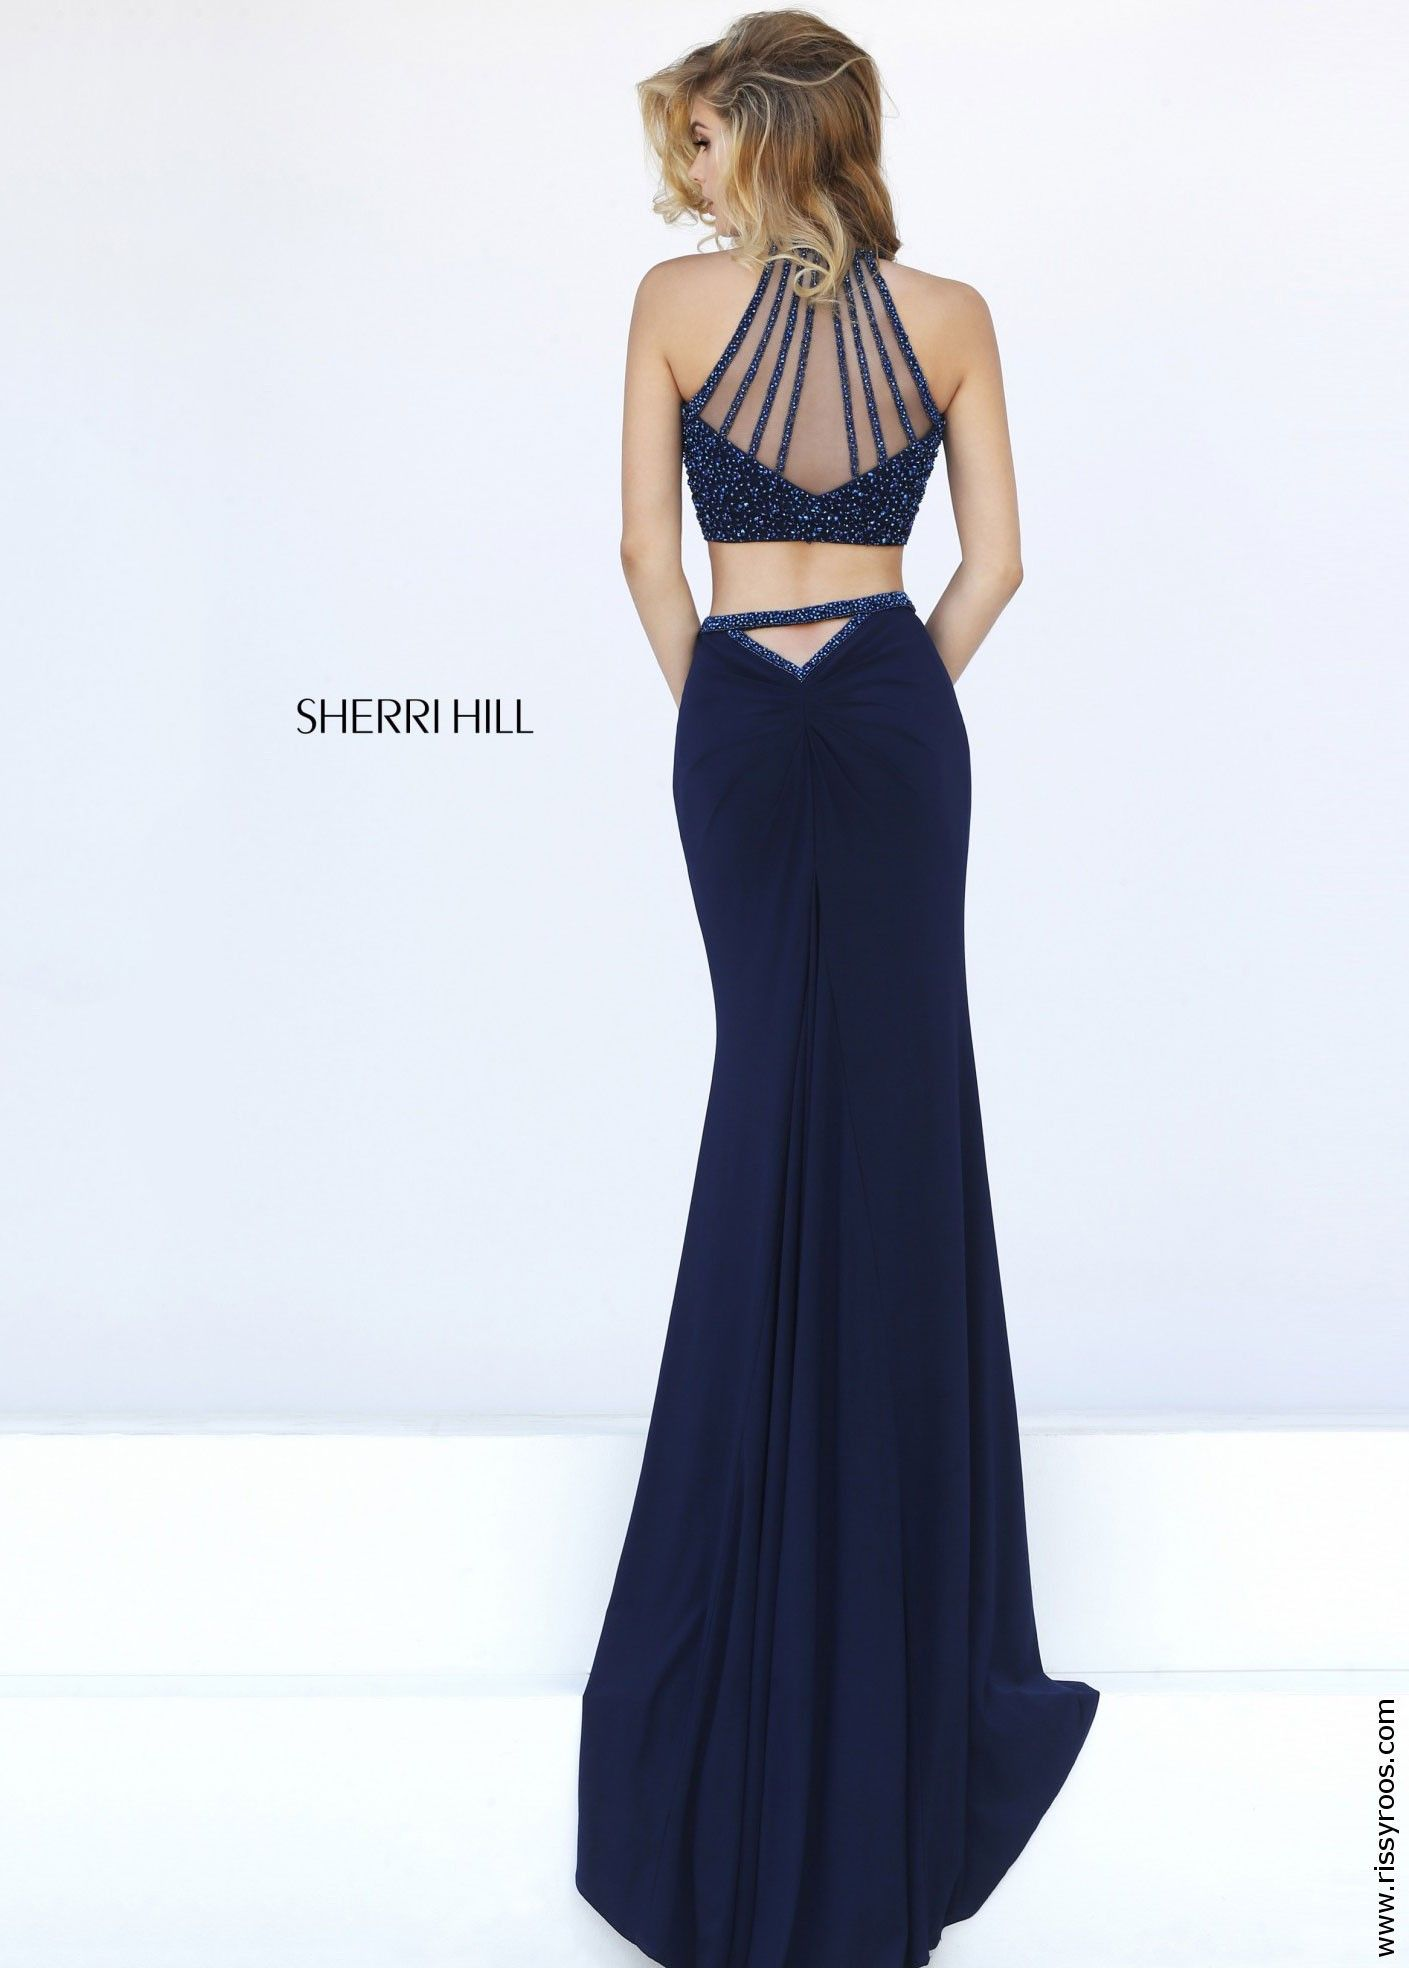 Sherri Hill 50062 Navy Fitted Jersey Two Piece Dress | 2016 Prom ...